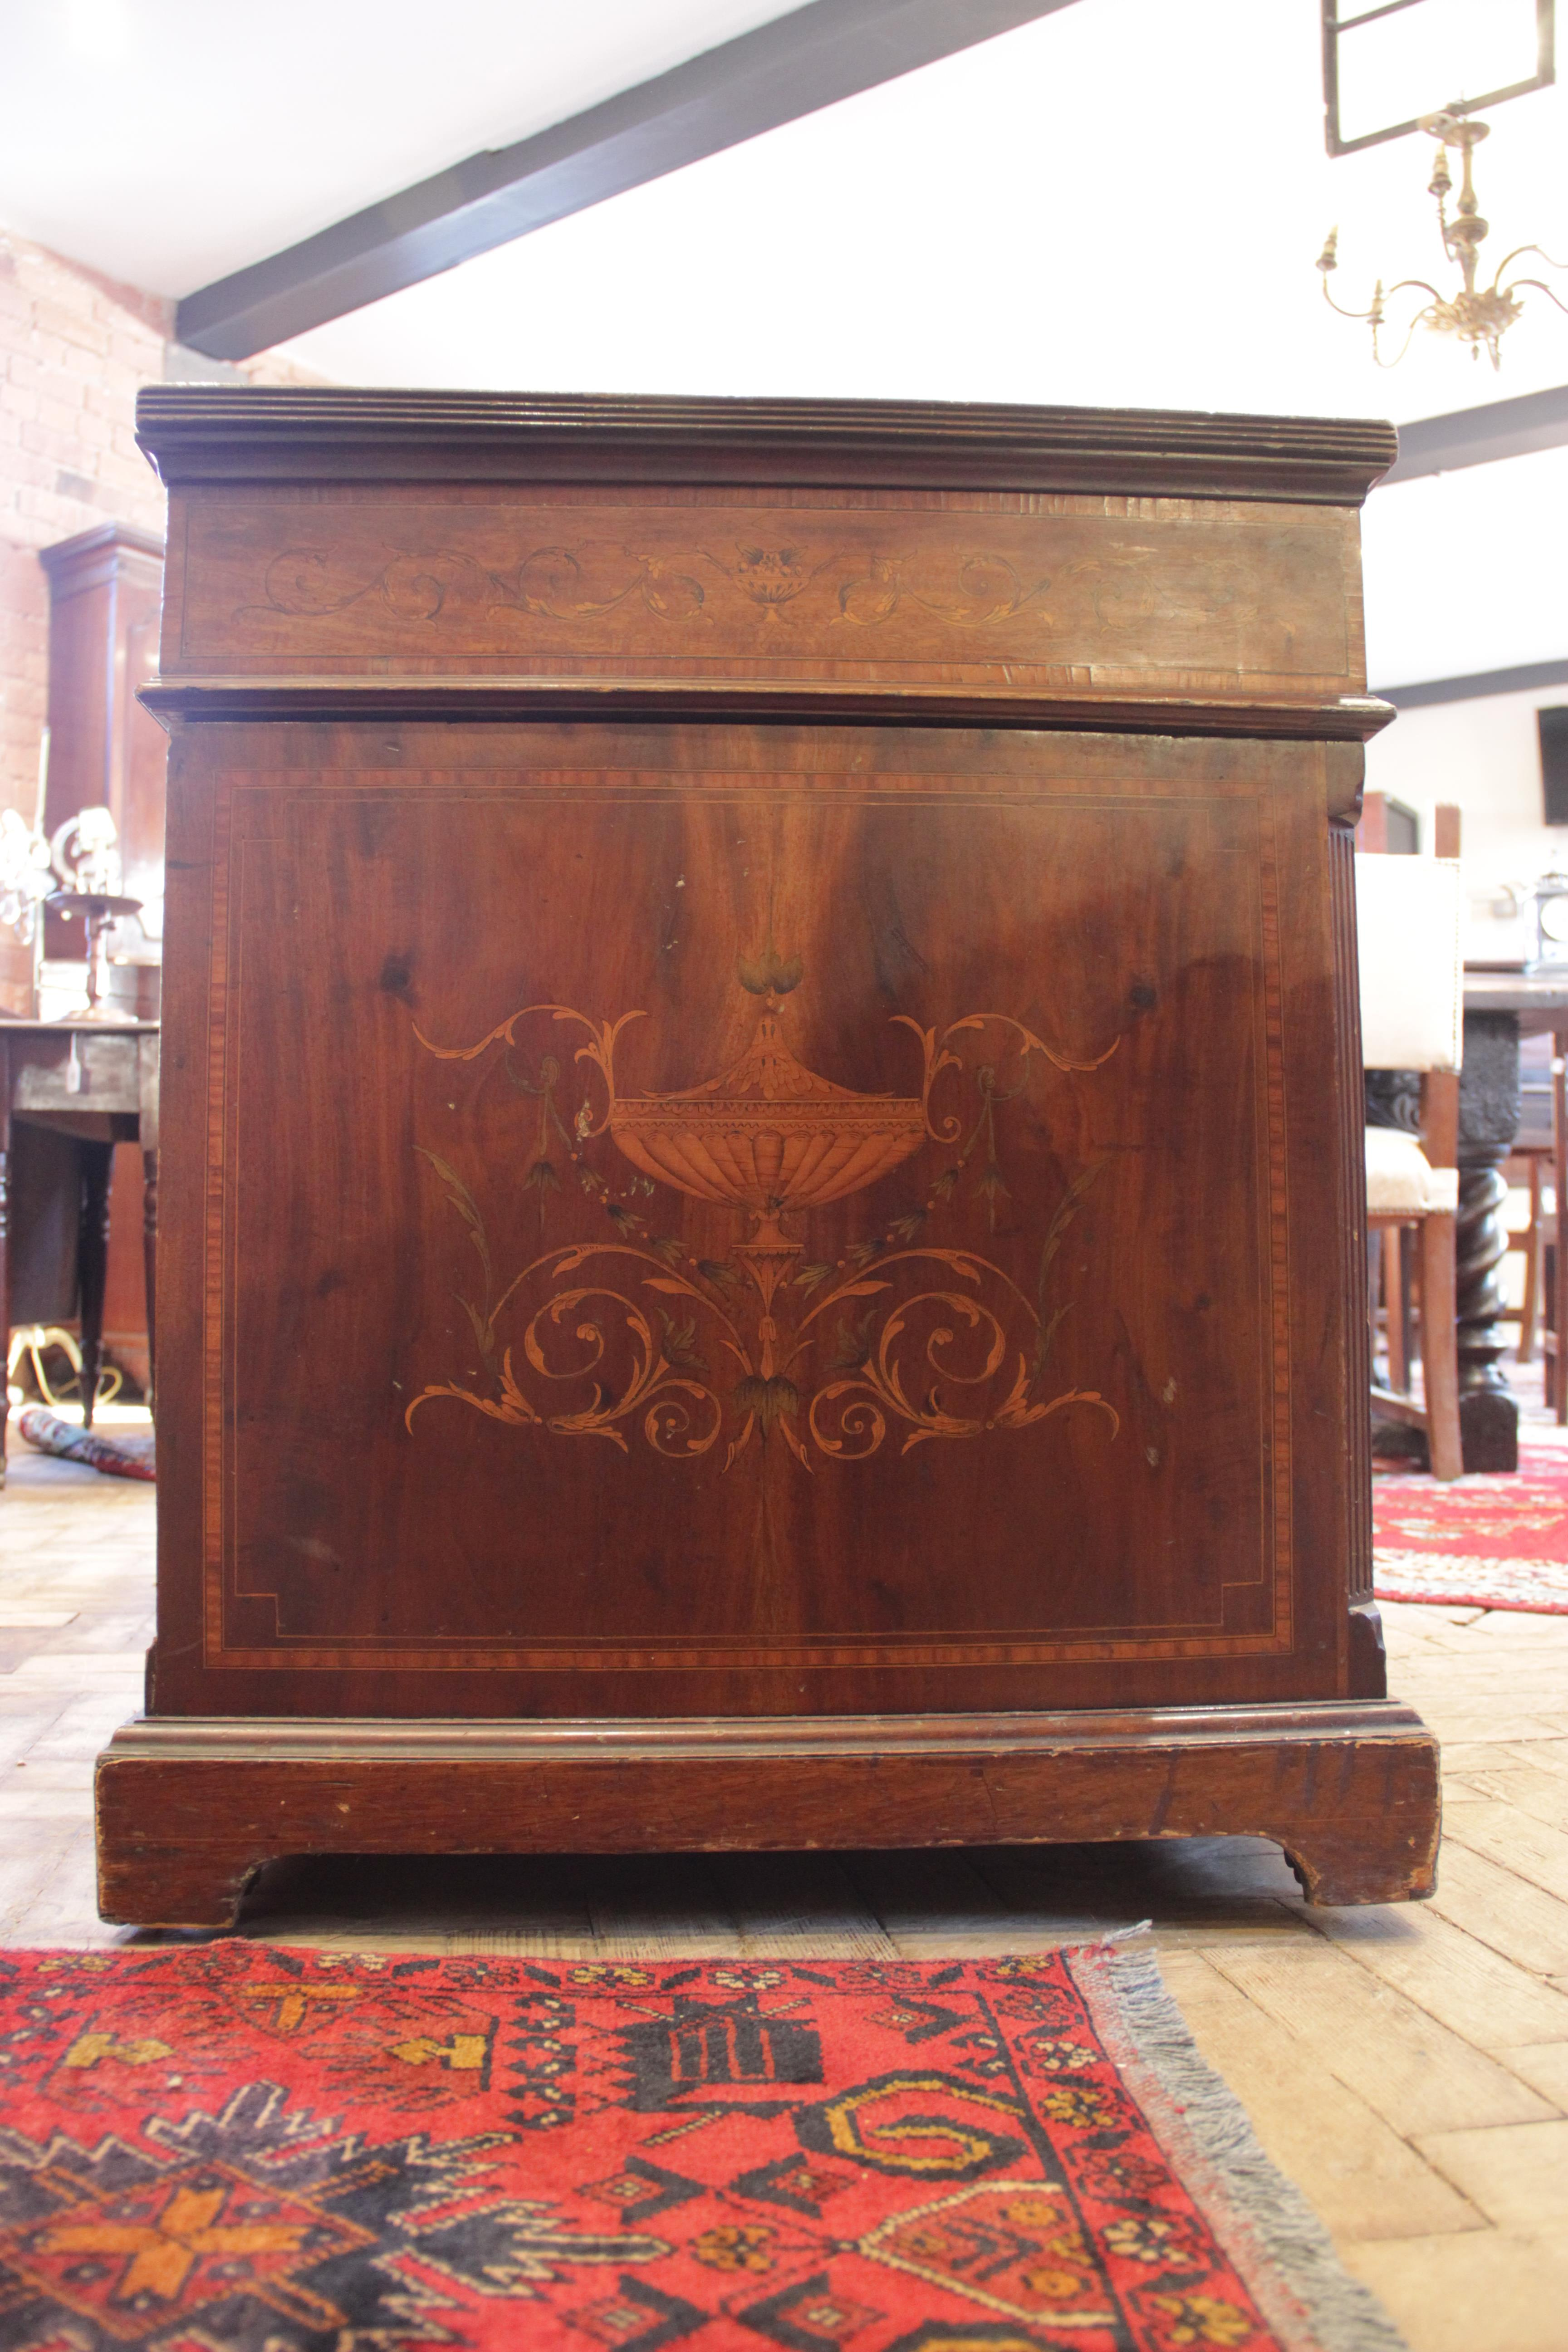 A late 19th century inlaid mahogany twin pedestal writing desk, the inverted breakfront top with a - Image 4 of 7